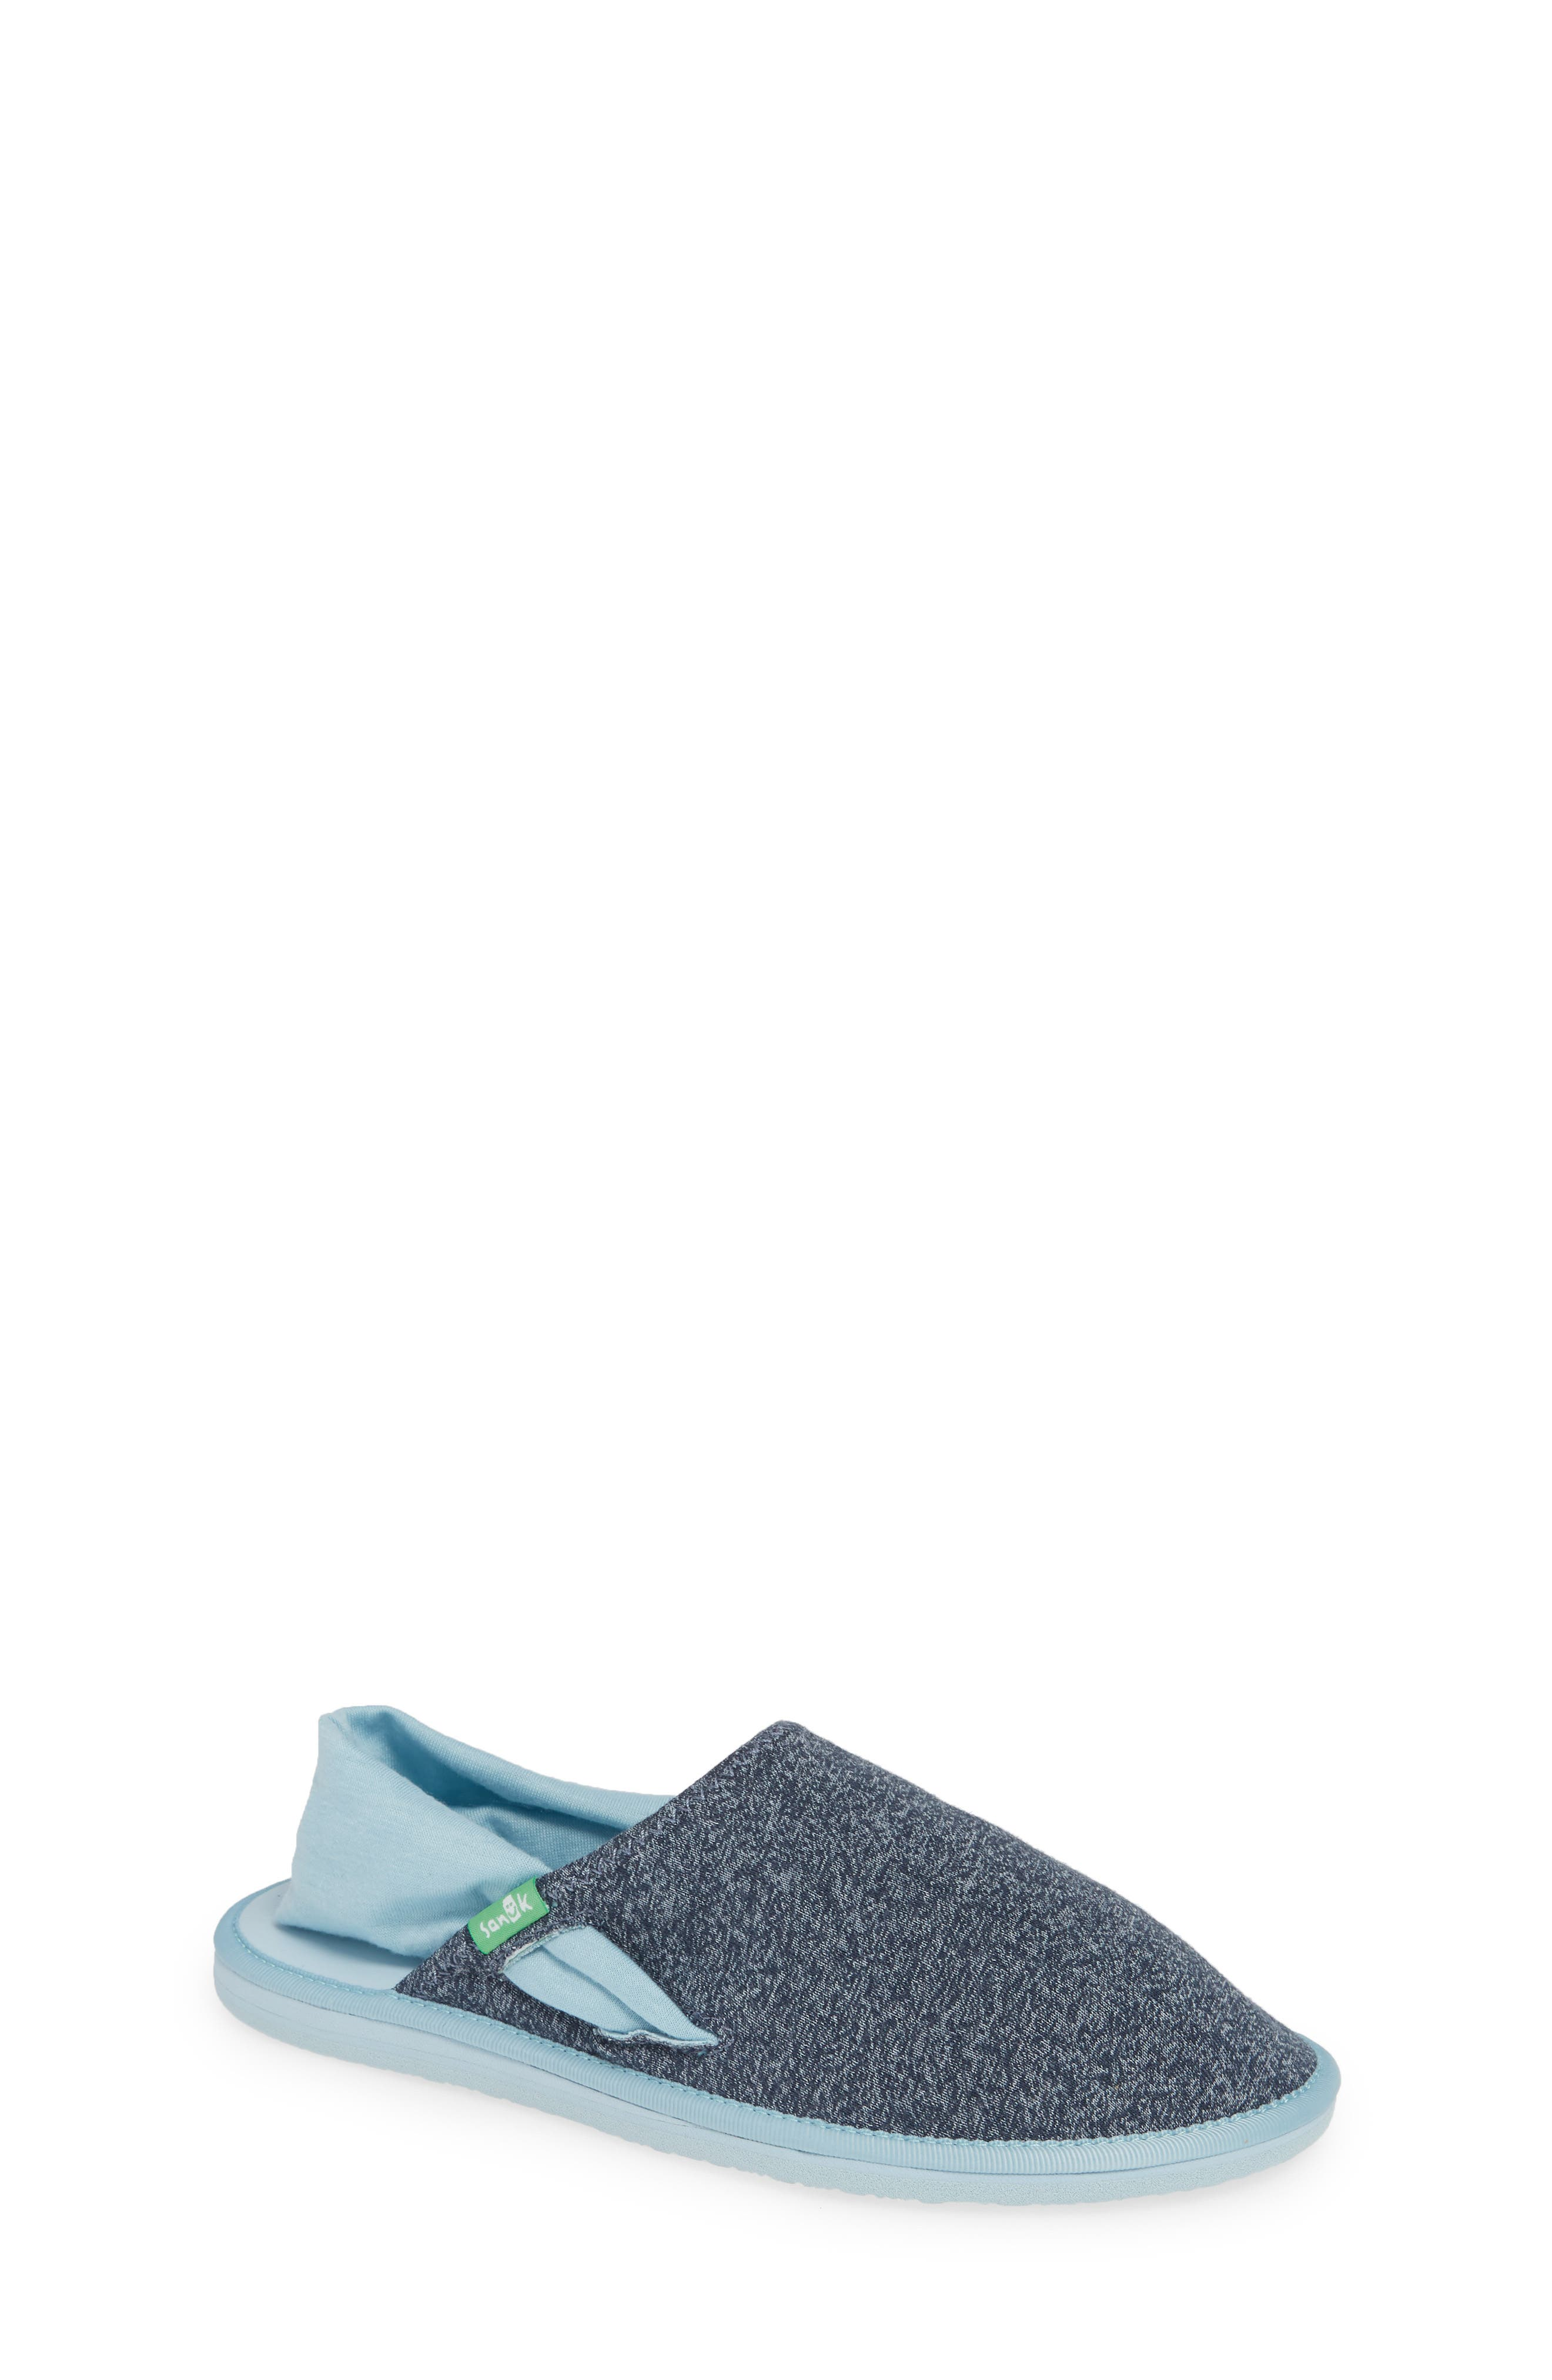 Lil Yoga Sling Cruz Slip-On,                         Main,                         color, HEATHER OUTERSPACE